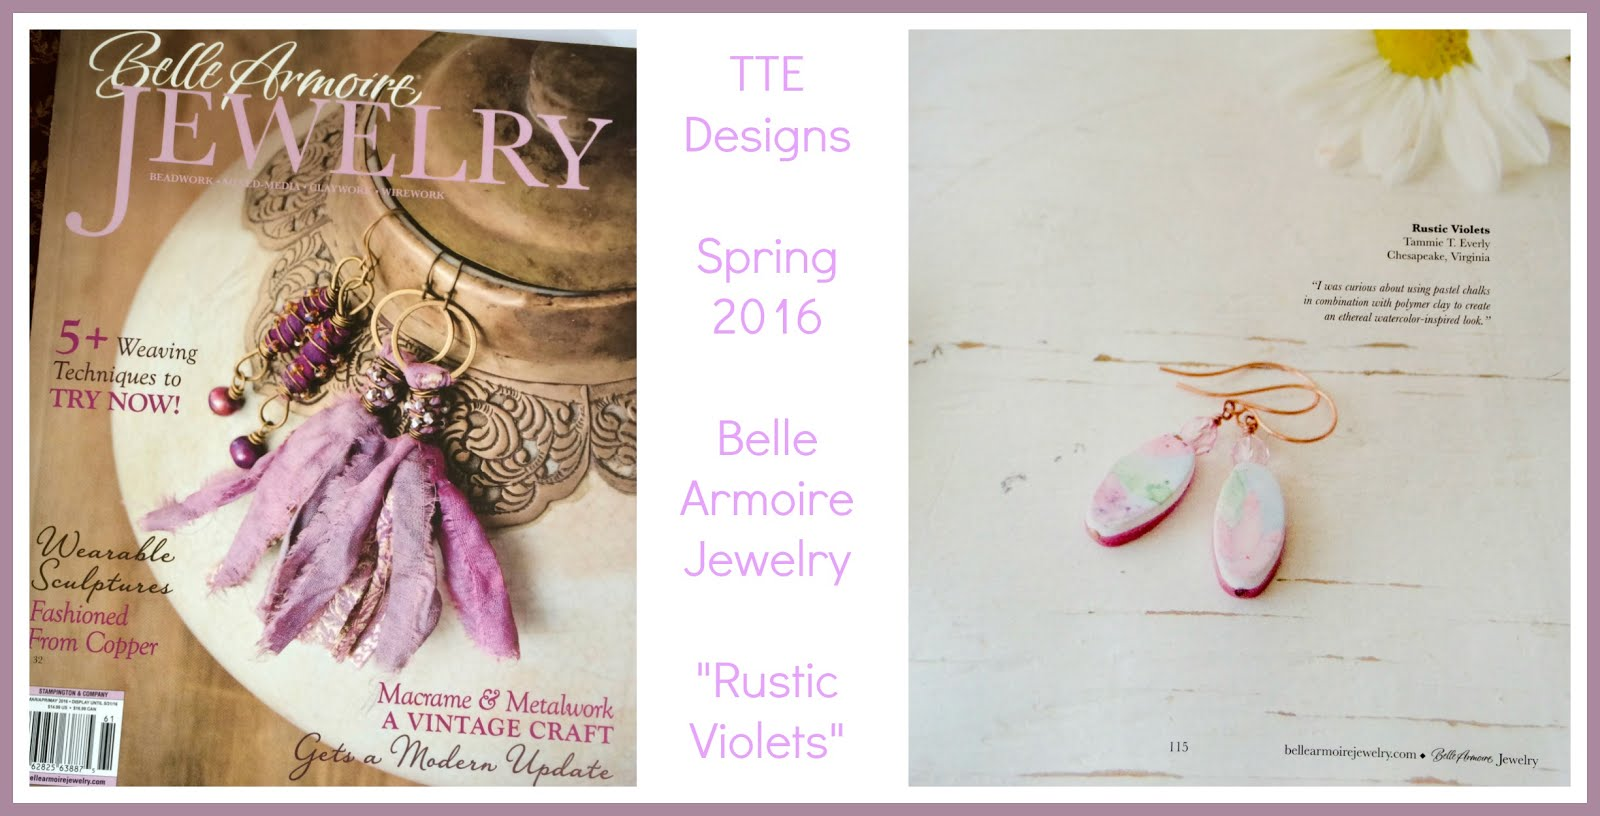 I'm Published in Belle Armoire Jewelry